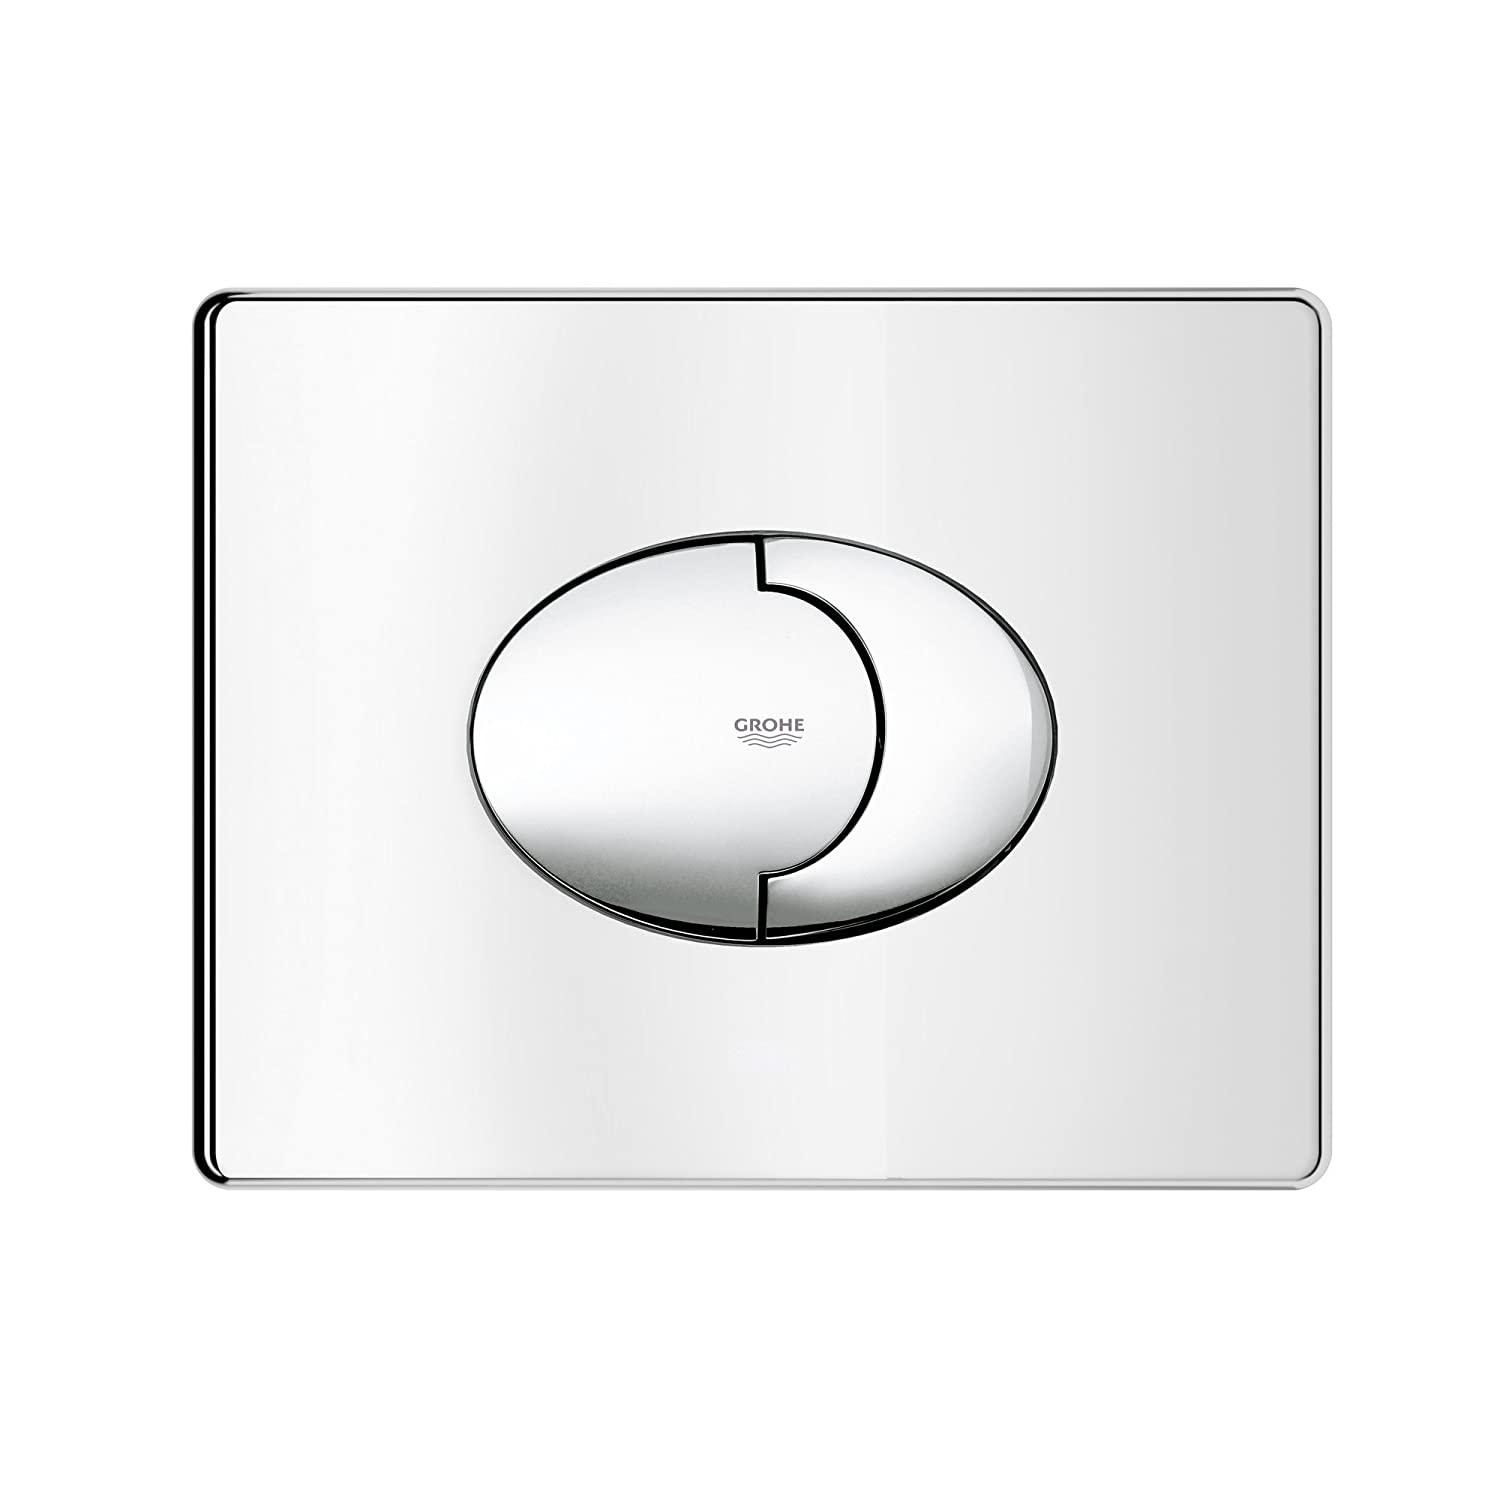 Grohe 38506000 skate air wc wall plate amazon diy tools pooptronica Image collections